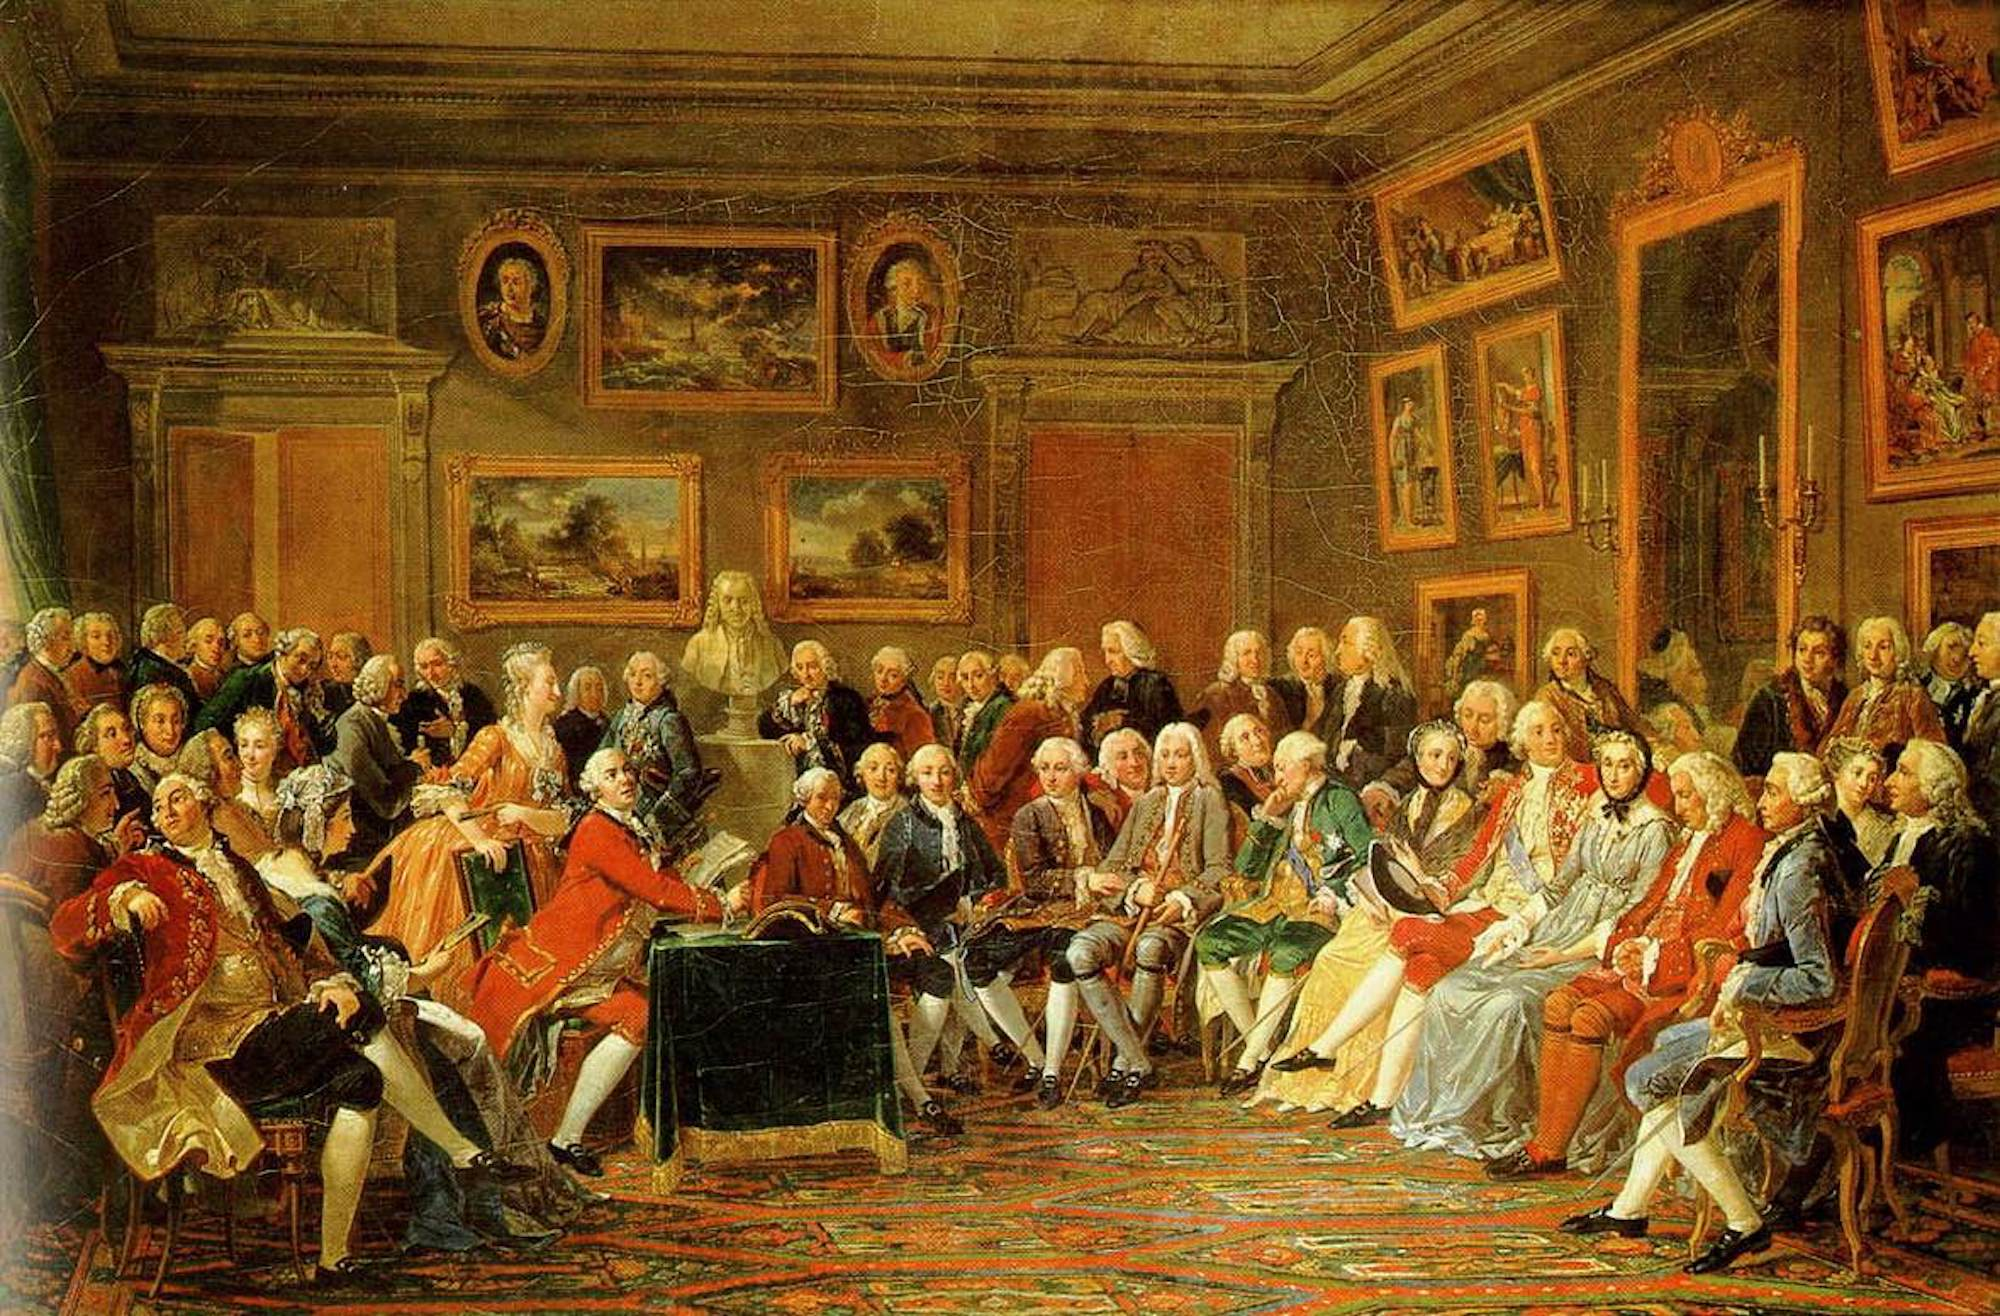 A painting of a large drawing room filled with people seated around a central figure giving a reading. While most in the room are men, some women are present. The room is very large, with high ceilings, and the walls are covered in paintings.